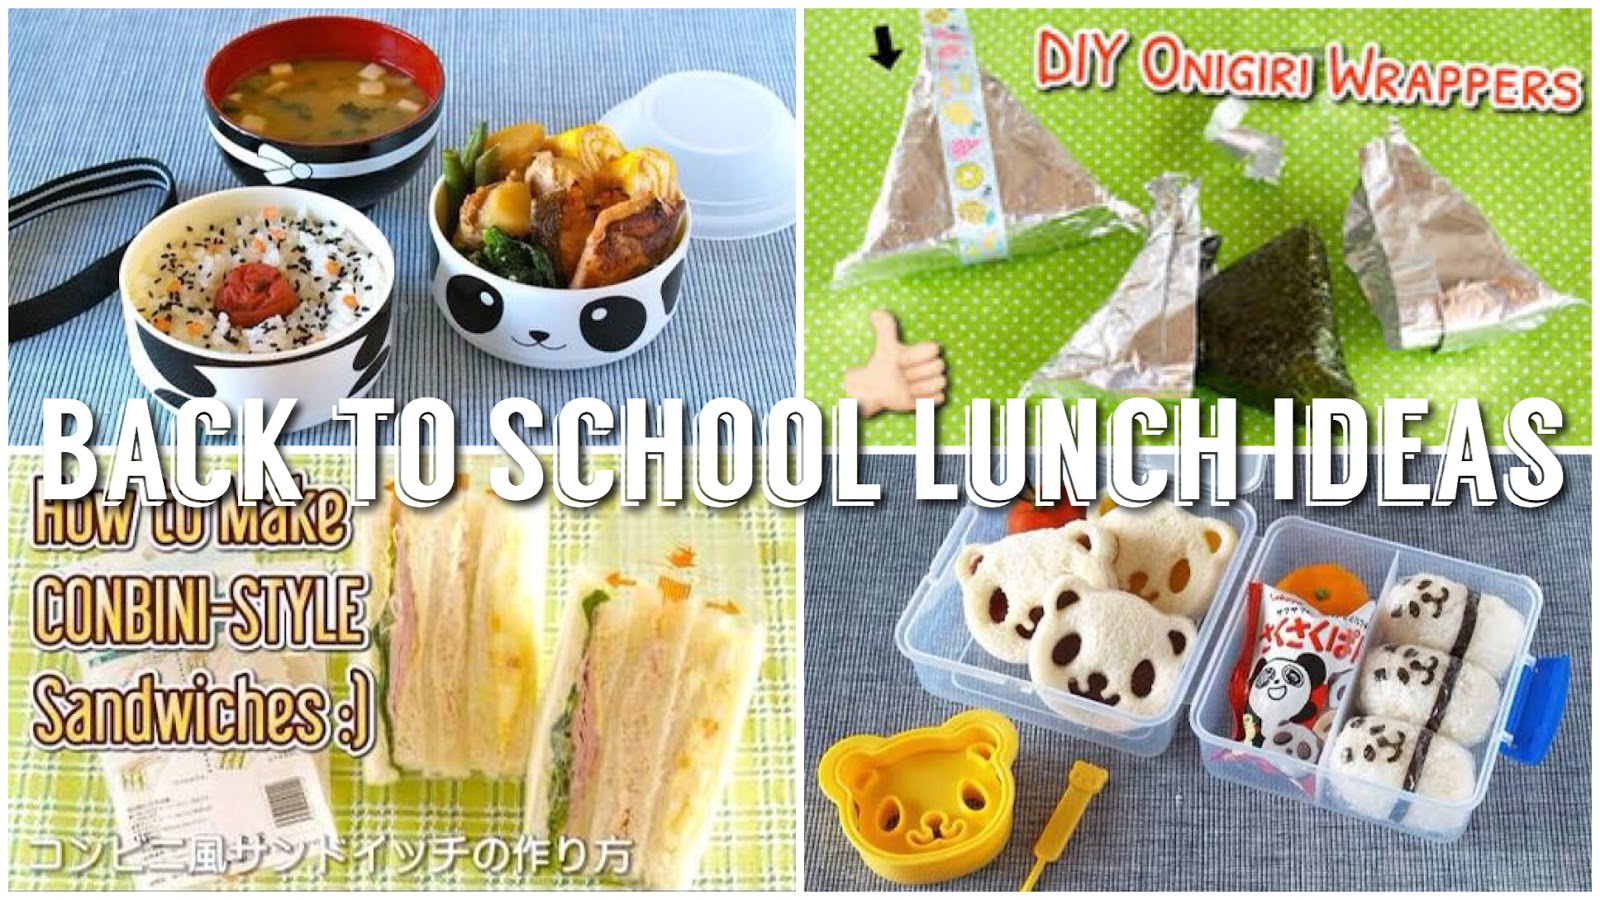 8 back to school lunch ideas japanese cooking recipe hauls 8 back to school lunch ideas forumfinder Gallery